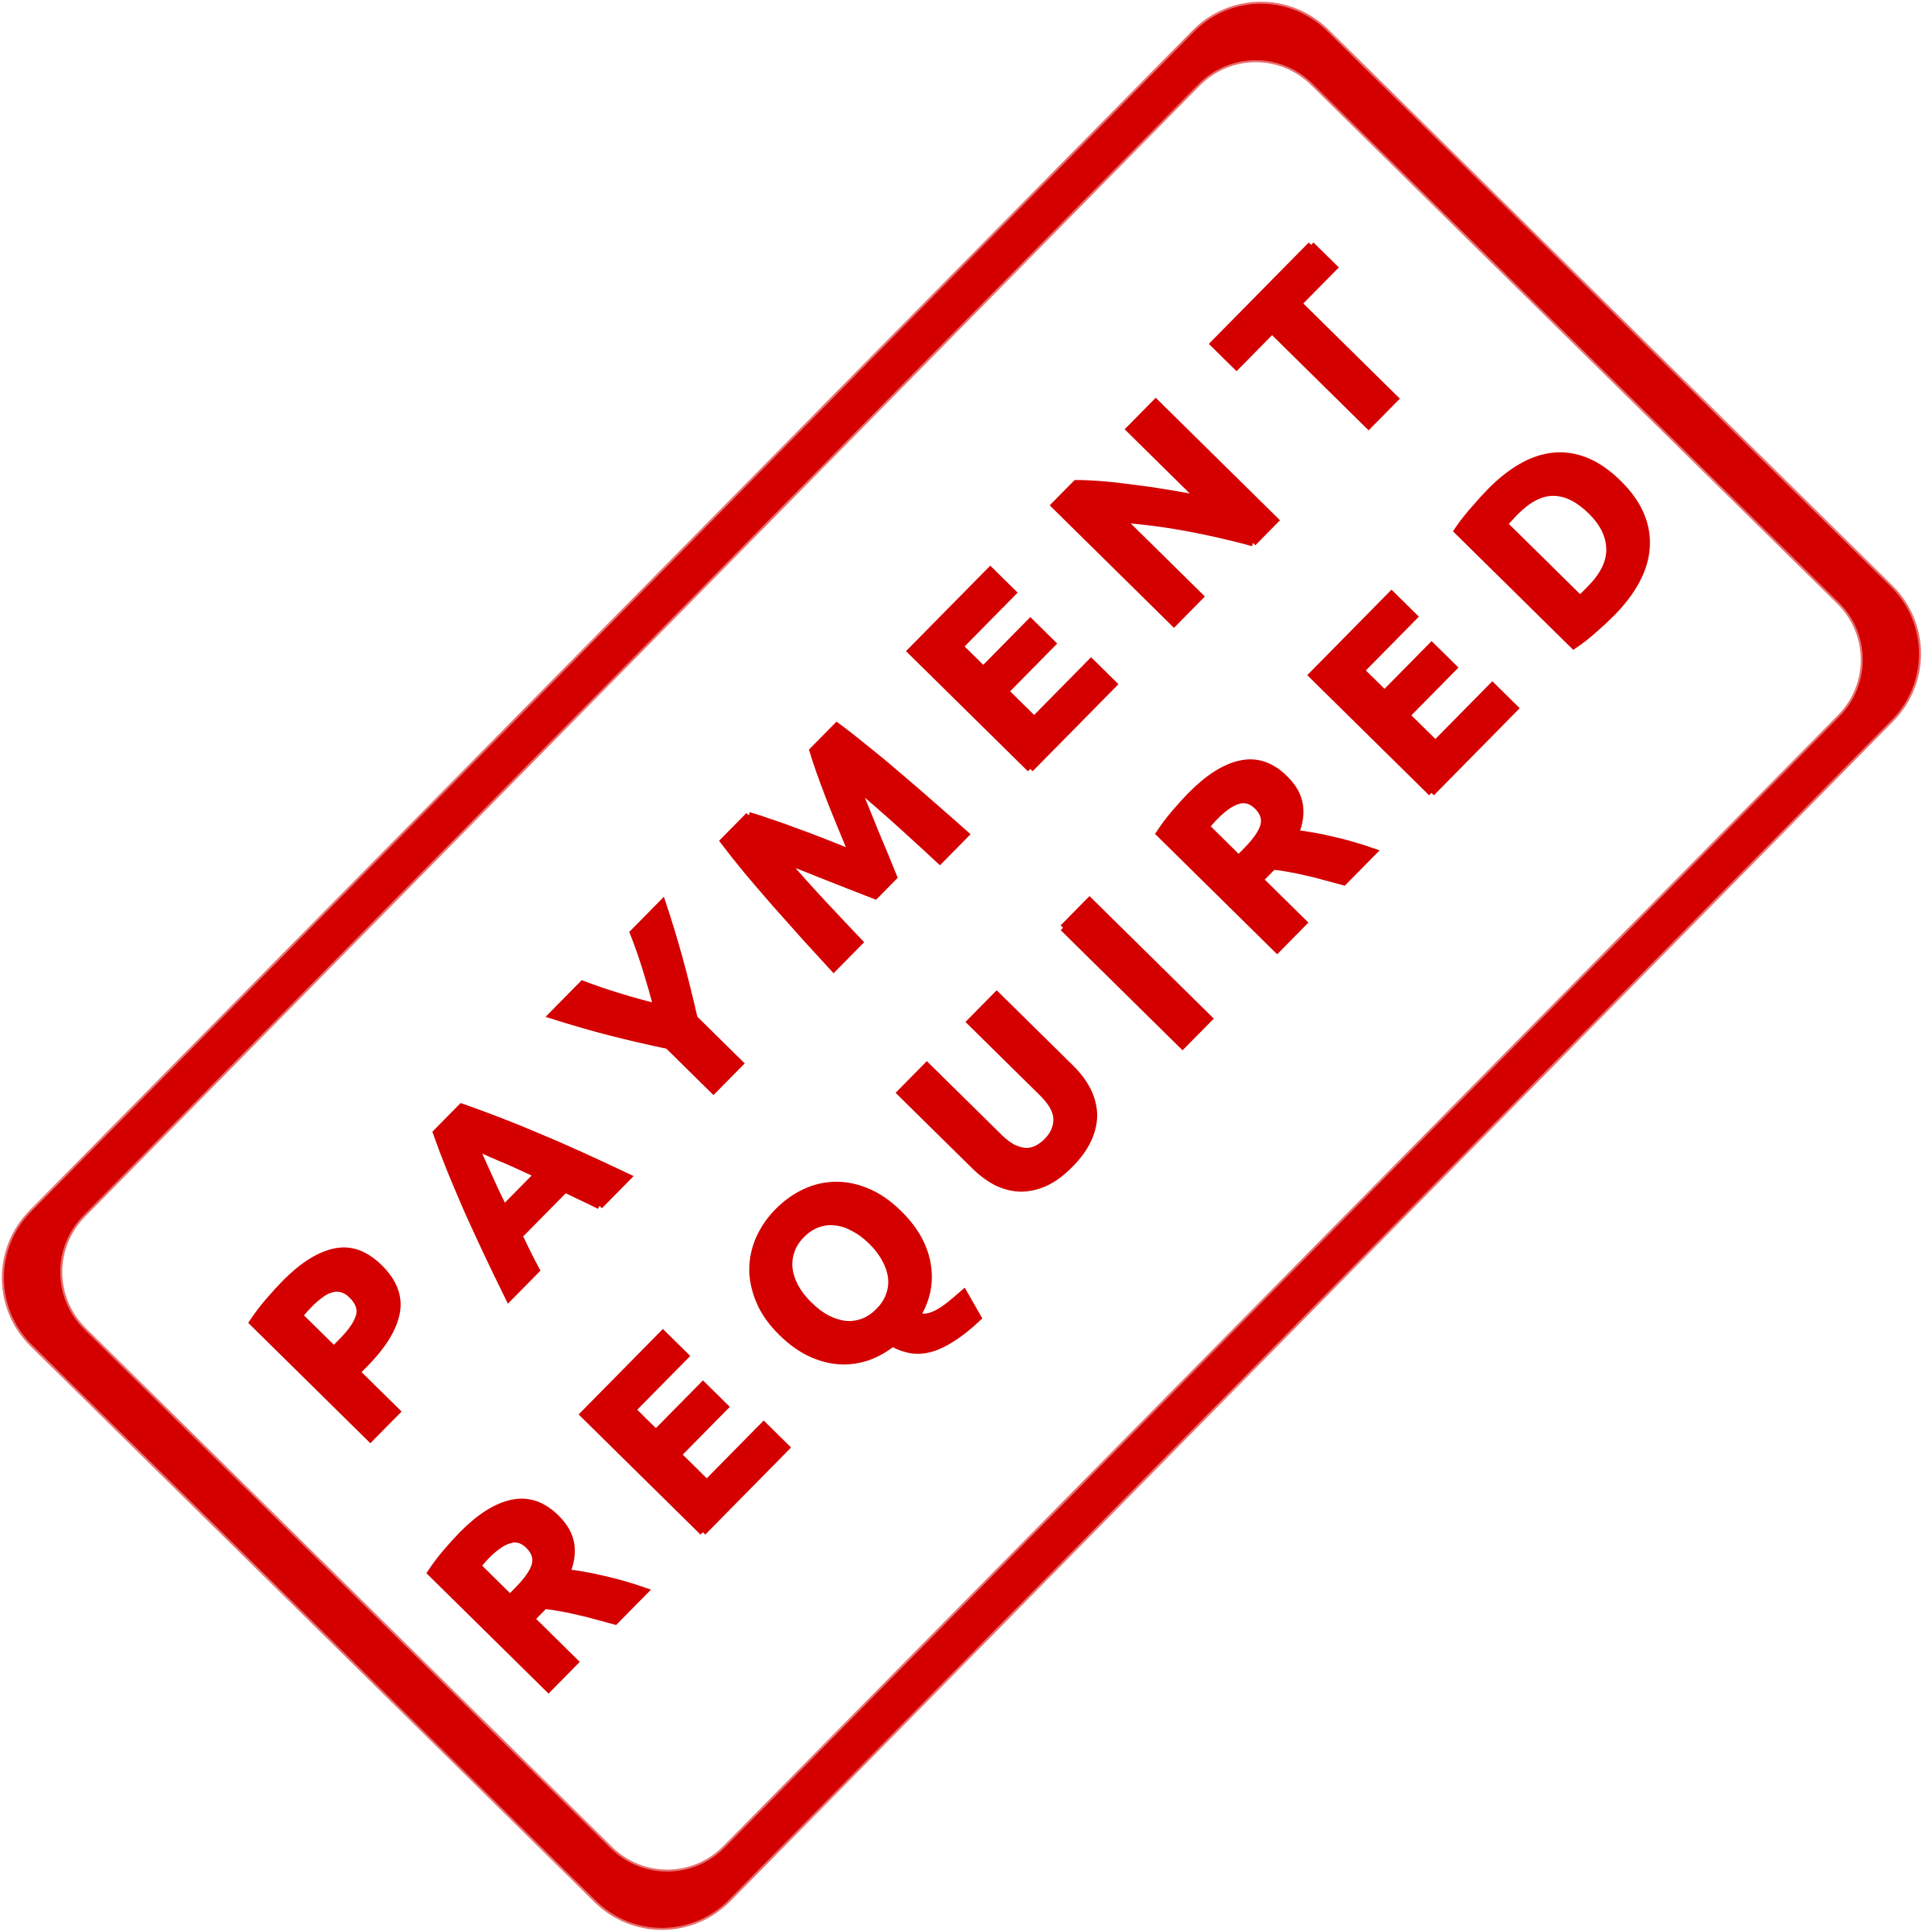 Paid image png. Payment required business stamp